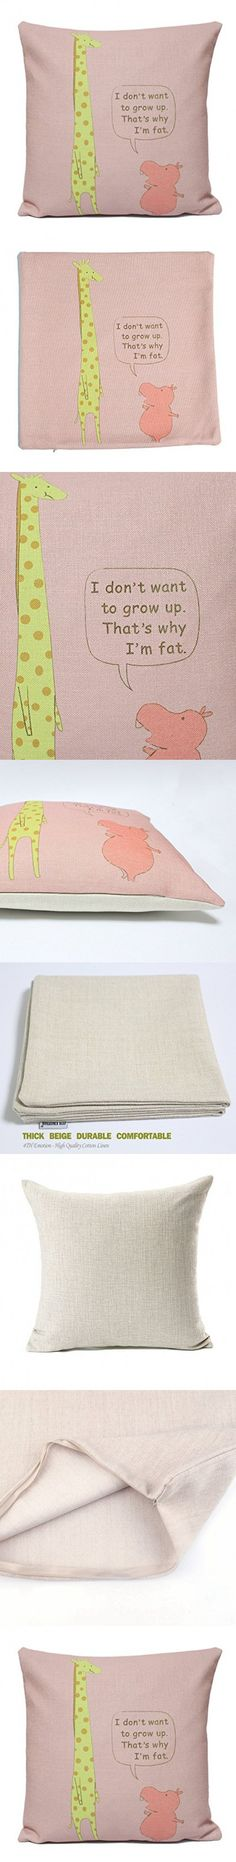 4TH Emotion The Story of Giraffe and Hippopotamus Sofa Simple Home Decor Design Throw Pillow Cover Pillow Case 18 x 18 Inch Cotton Linen(I Don't Want TO Grow Up That's Why I'm Fat)